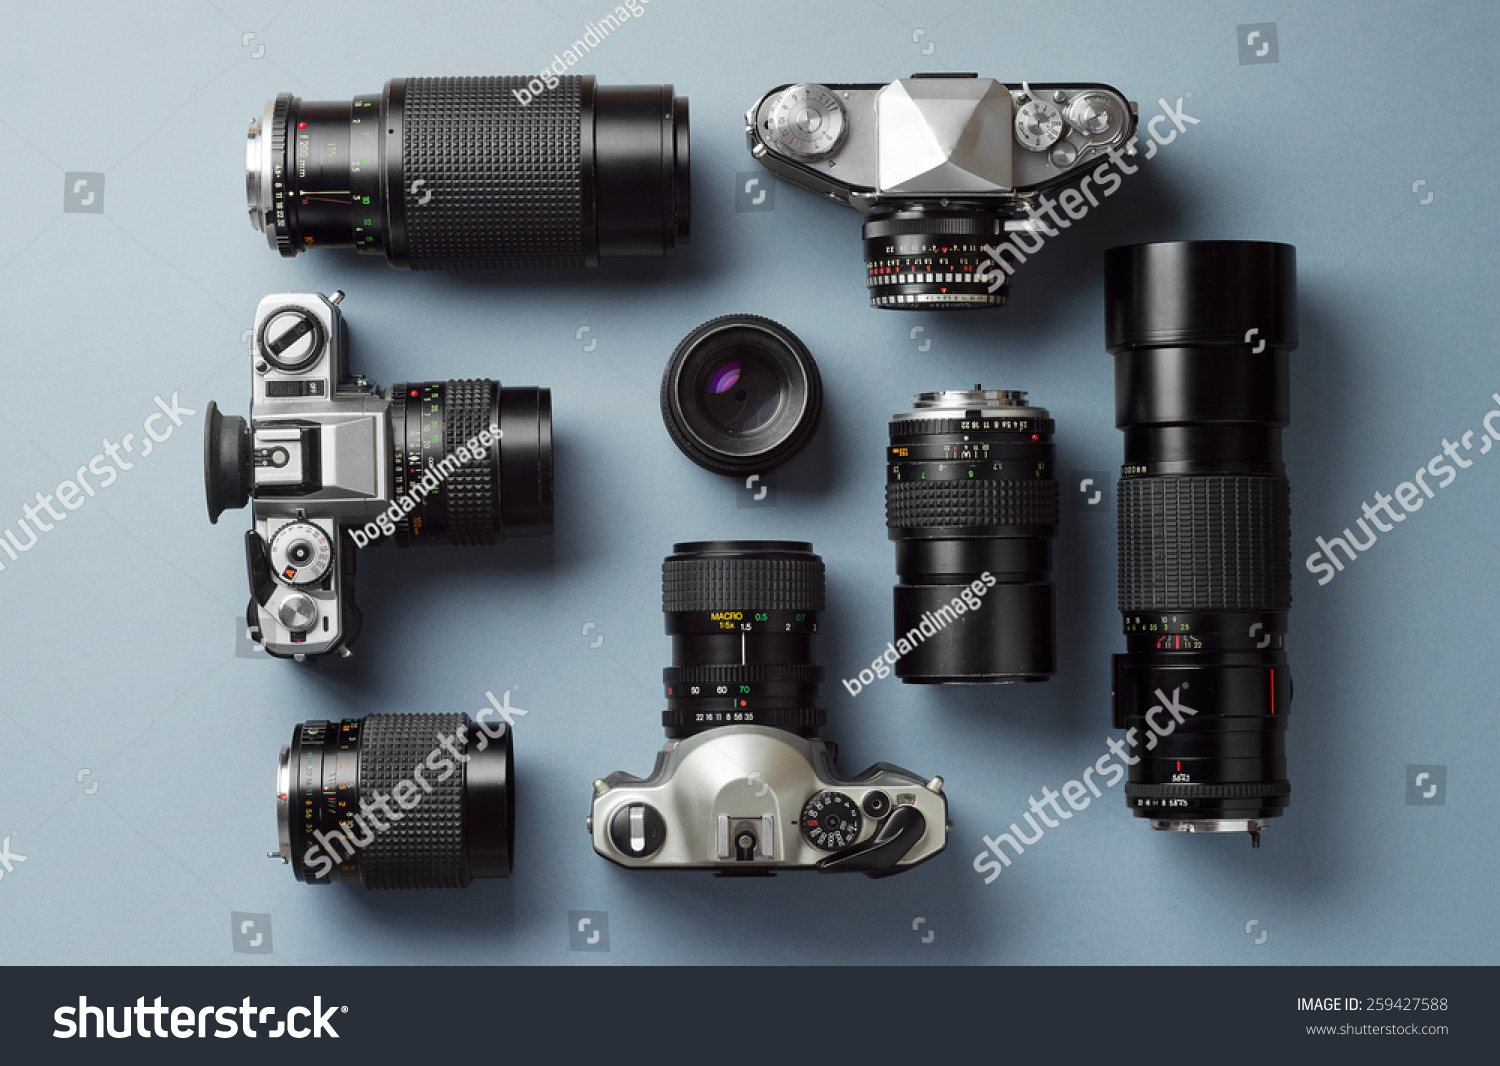 Collection Vintage Cameras Camera Lens Well Stock Photo (Royalty Free)  259427588   Shutterstock